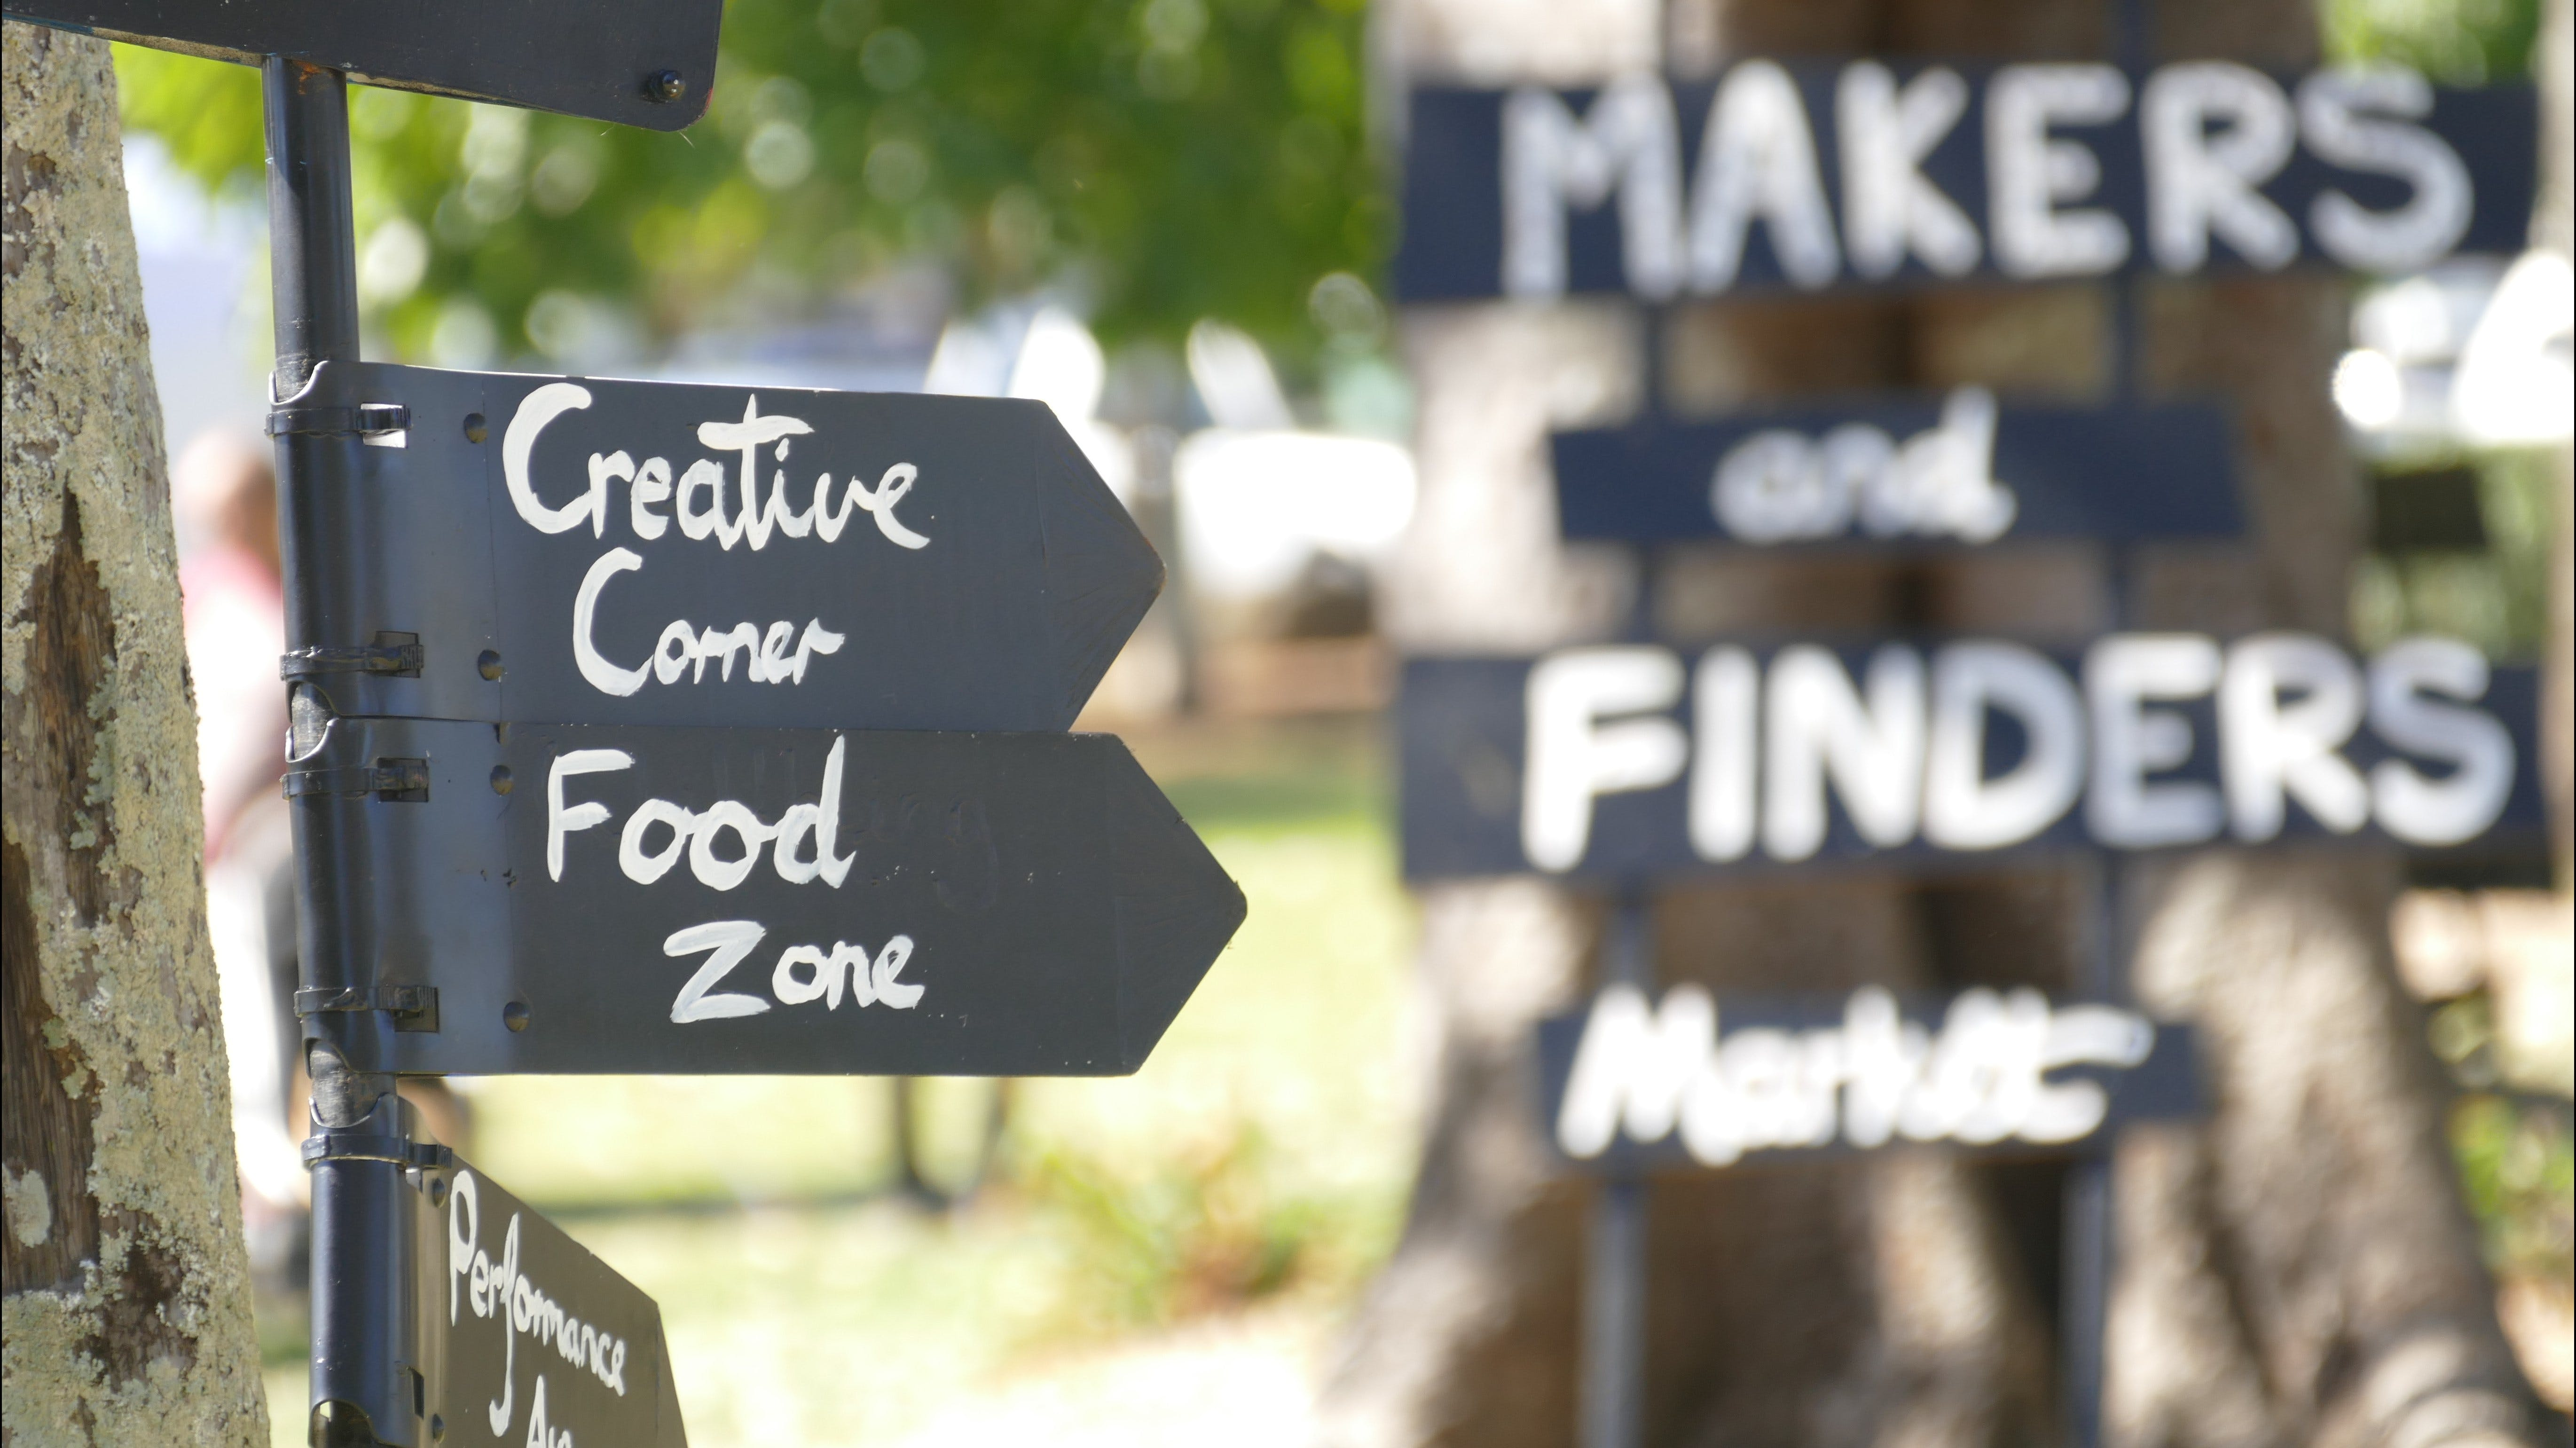 Makers and Finders Market Murwillumbah - Tourism Cairns